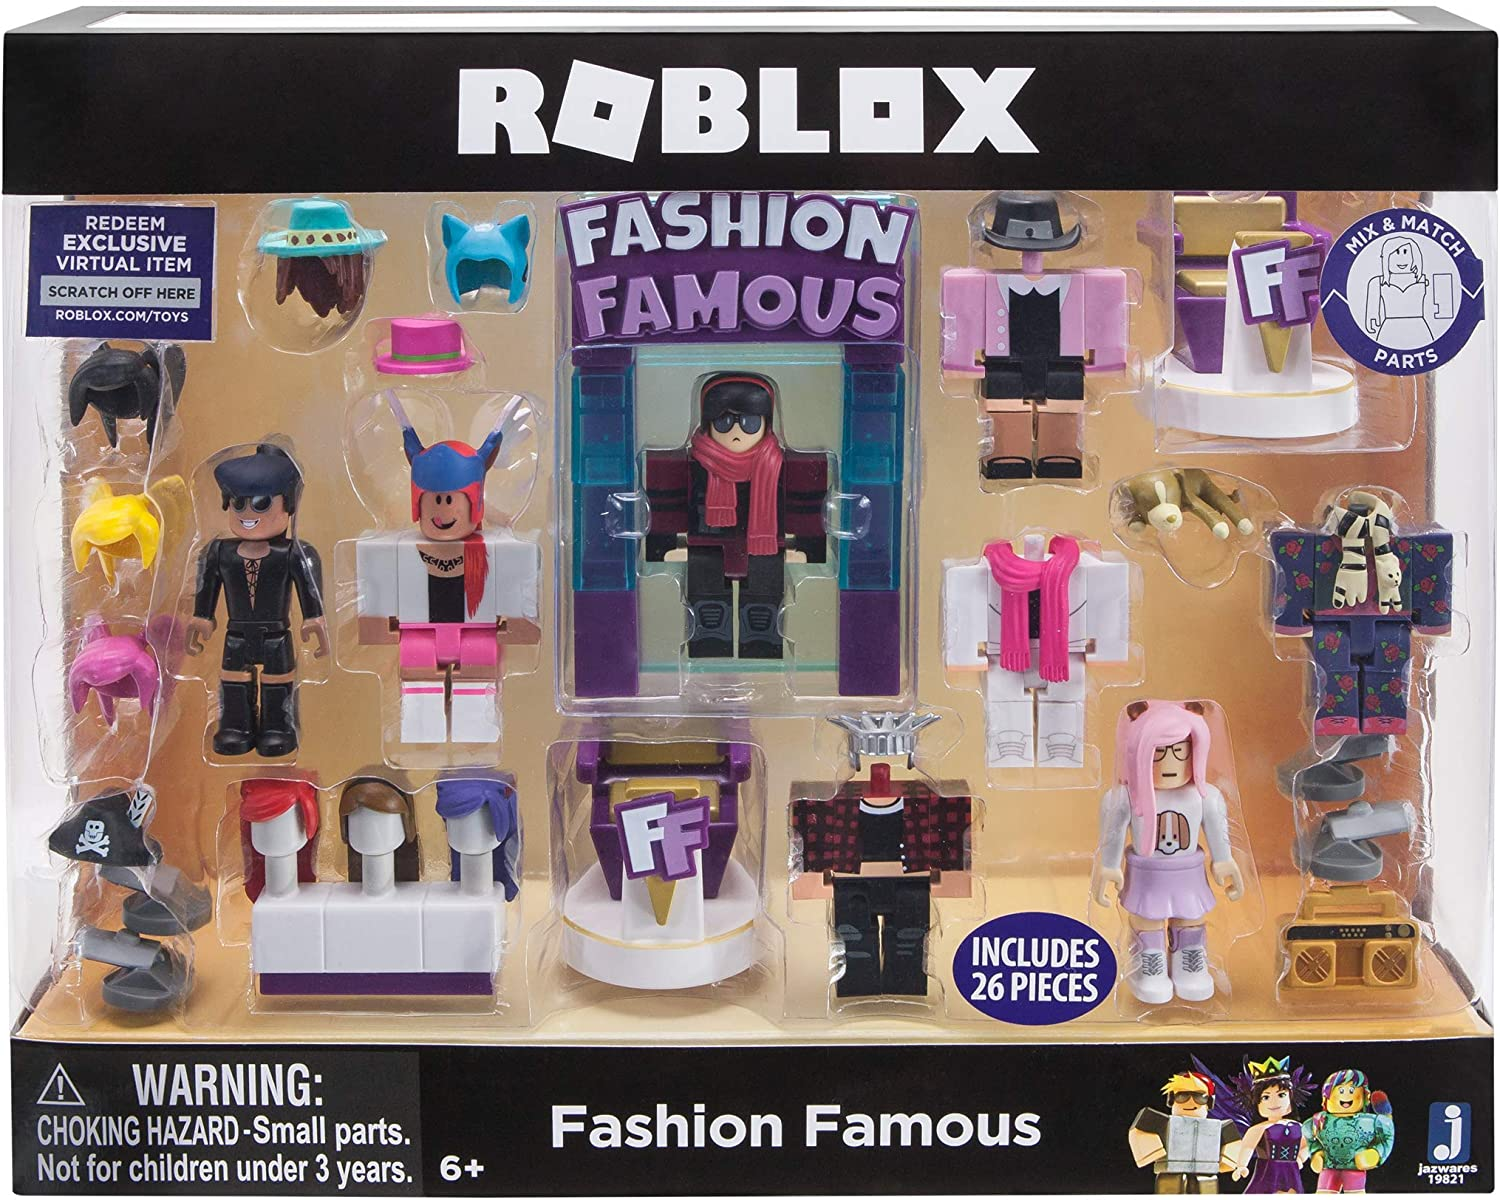 Roblox Fashion Famous Song Codes Roblox Games That Give Amazon Com Roblox Celebrity Collection Fashion Famous Playset Includes Exclusive Virtual Item Toys Games